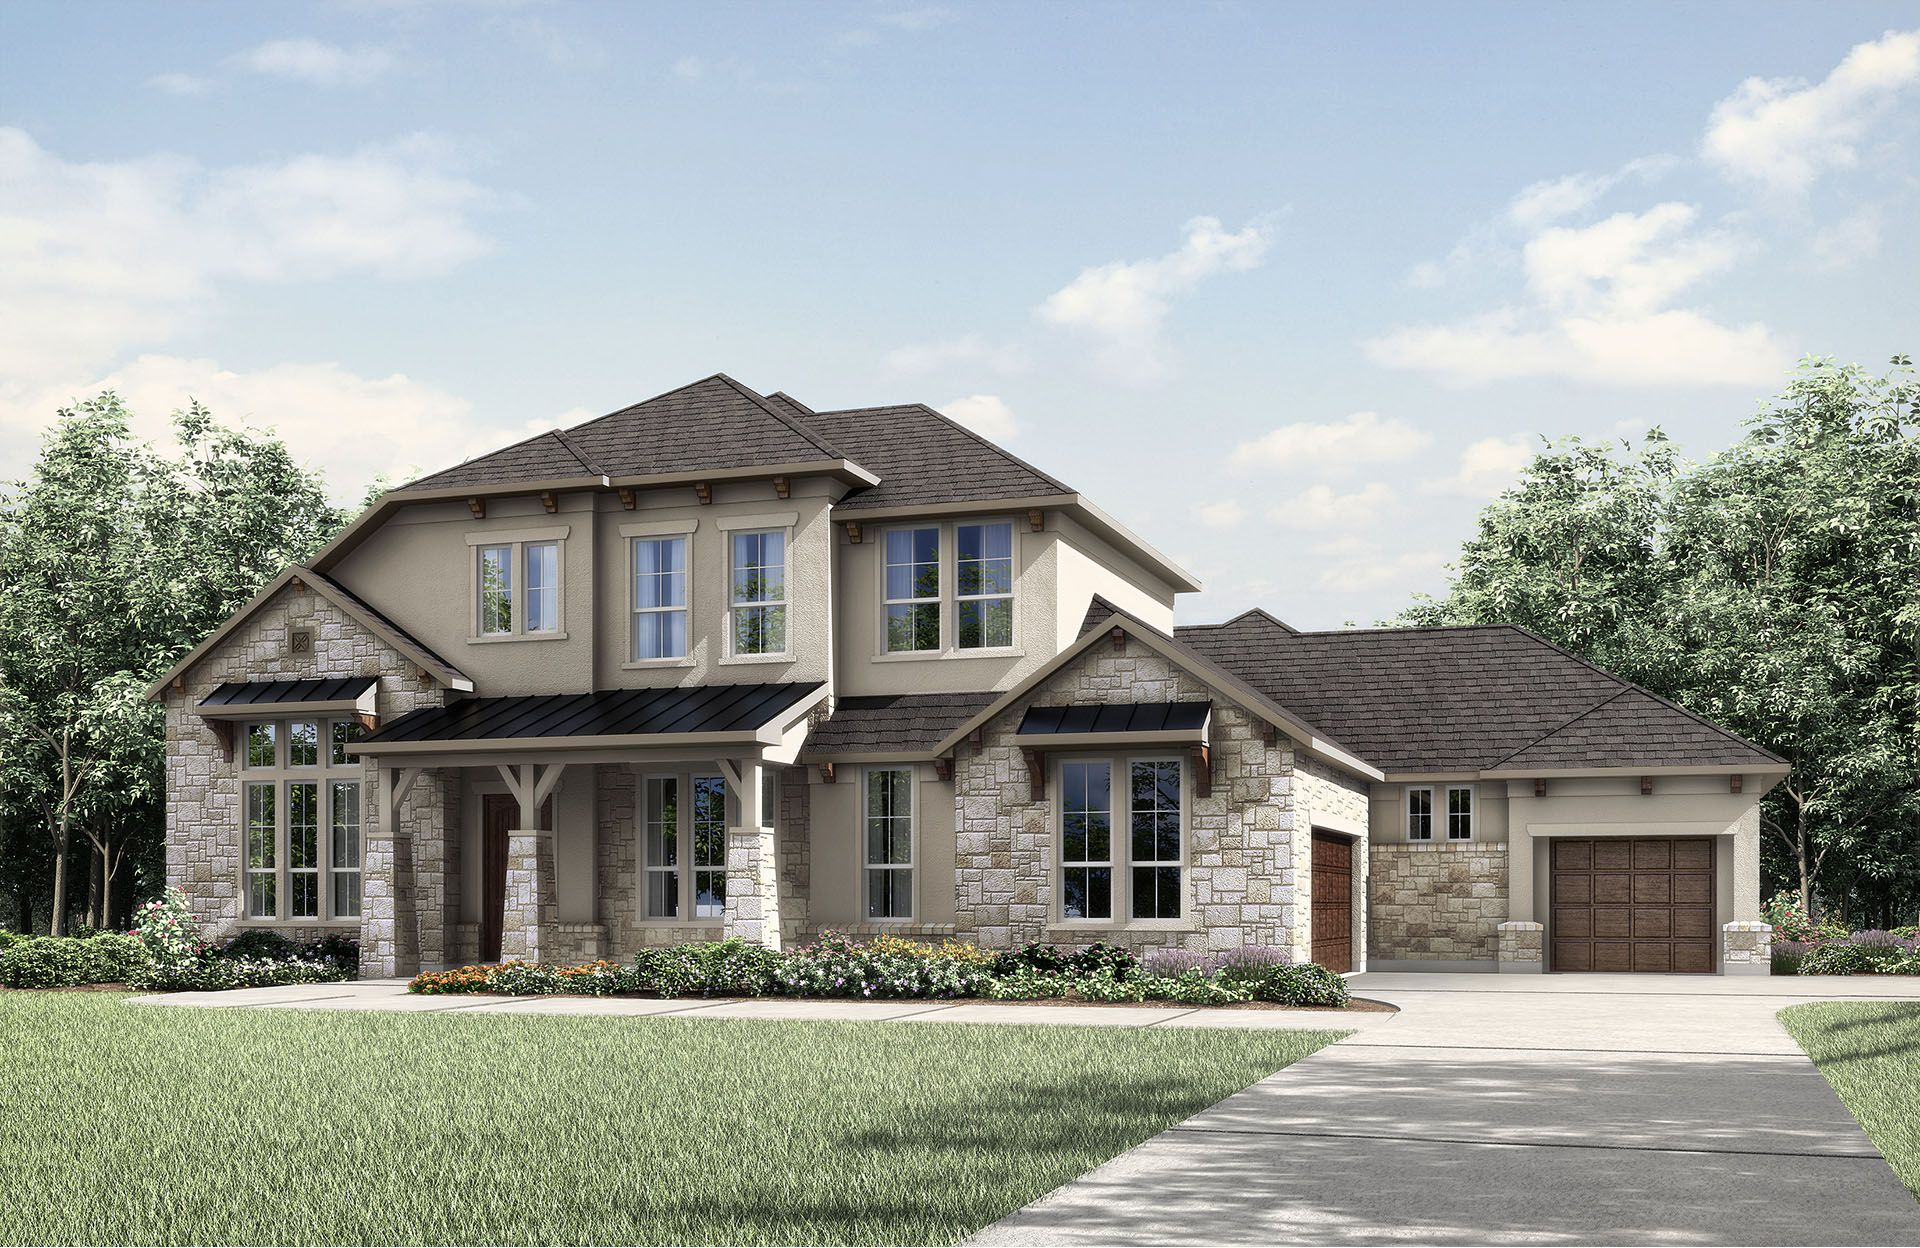 Single Family for Sale at Colinas Ii 2020 Milan Meadows Court Leander, Texas 78641 United States